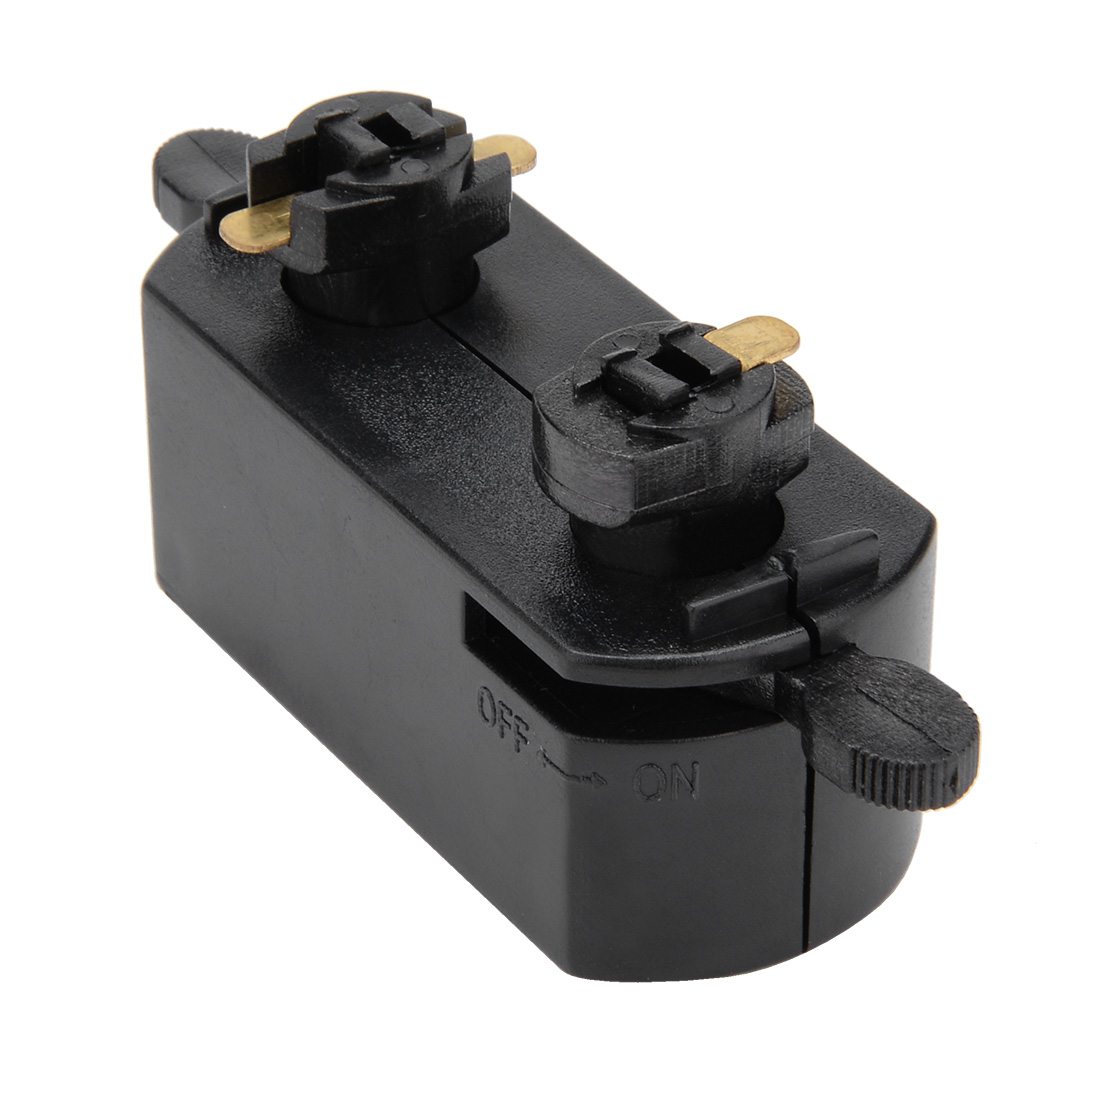 3-Wire Track Rail Joint Connector On/off Control Lighting Fittings GT-301 Black - image 2 of 2